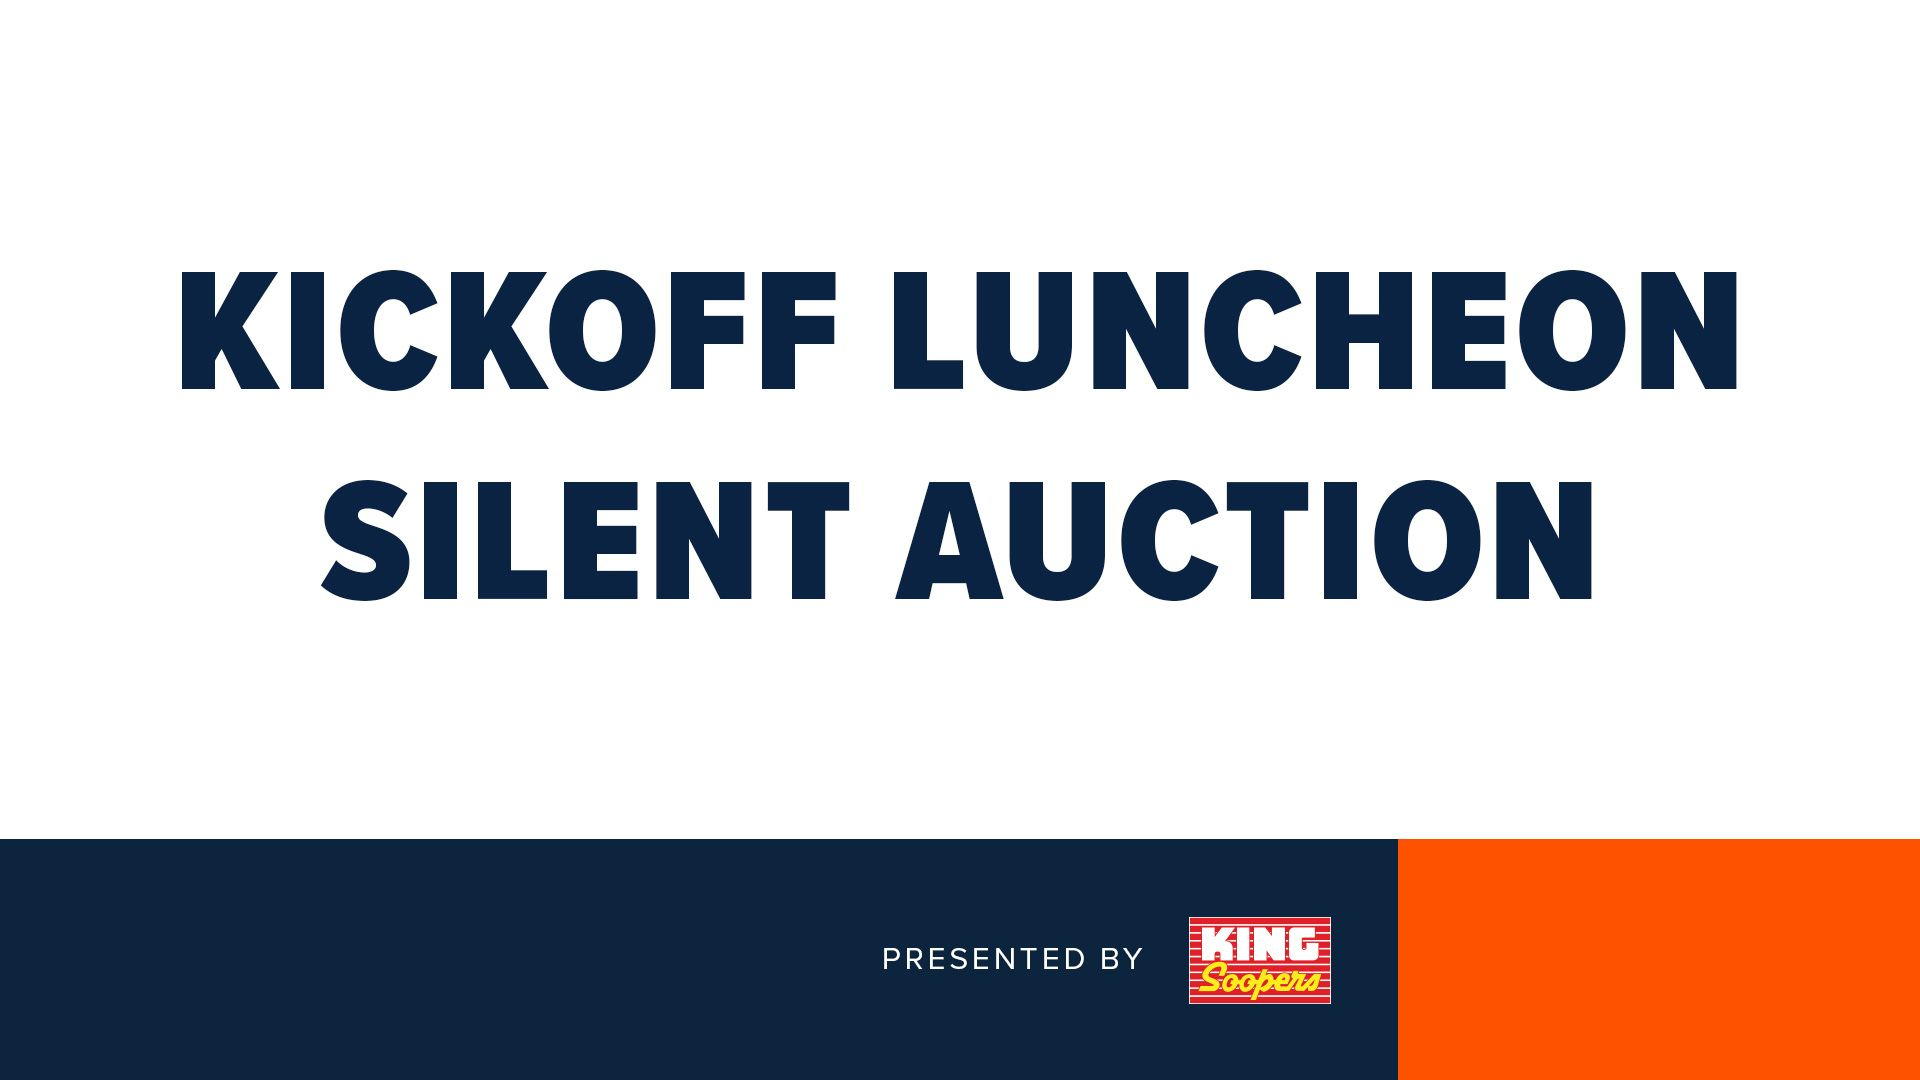 virtual_kickoff_luncheon_silent_auction_1920x1080